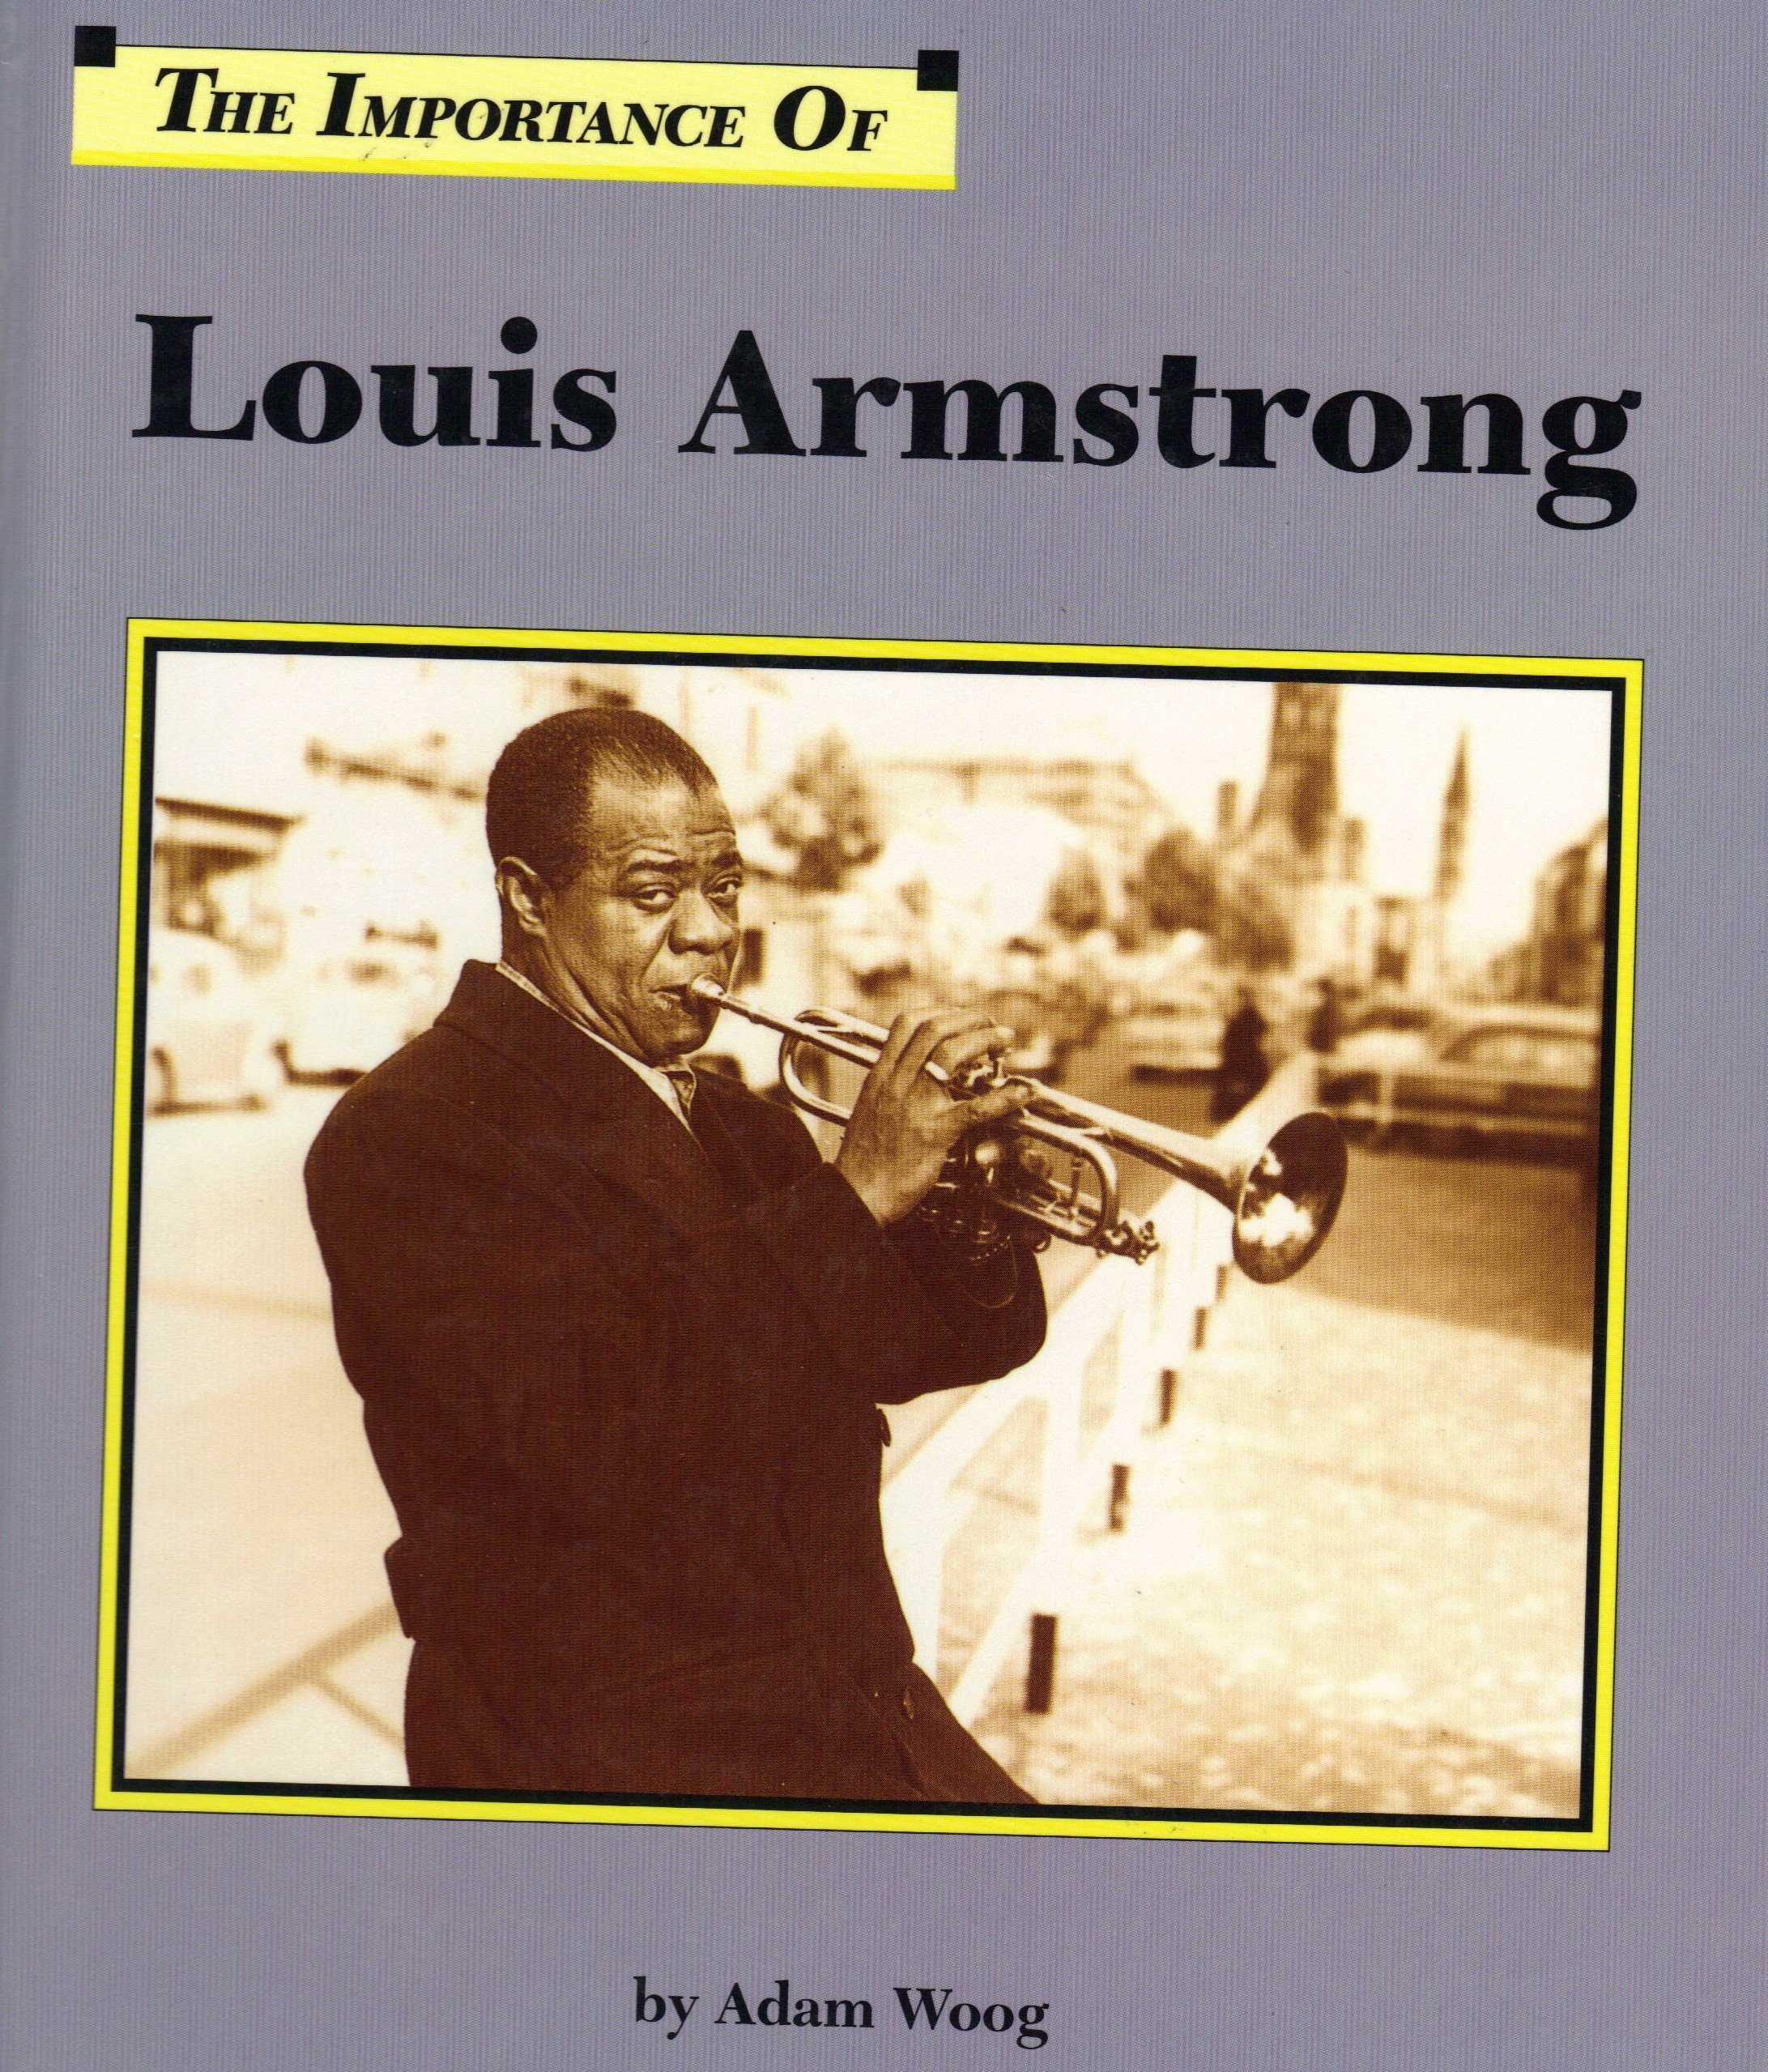 The Importance Of Series - Louis Armstrong